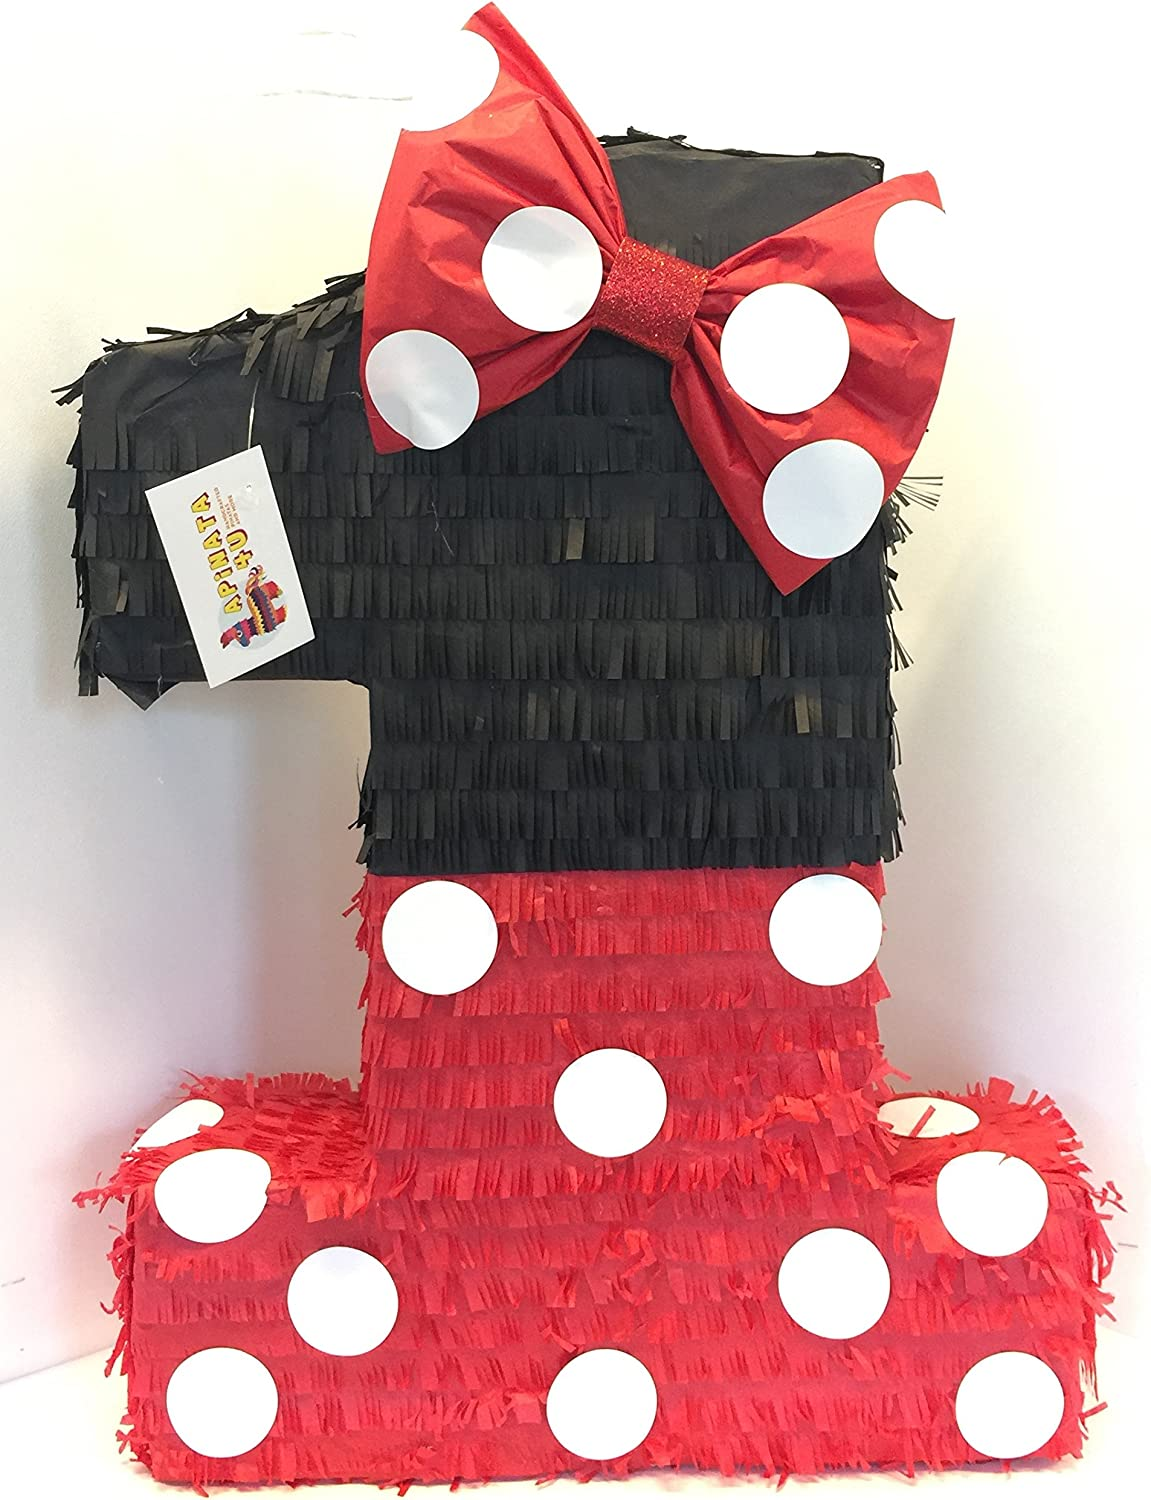 APINATA4U Large Black Red Number New product!! One Nippon regular agency Bow Pinata with